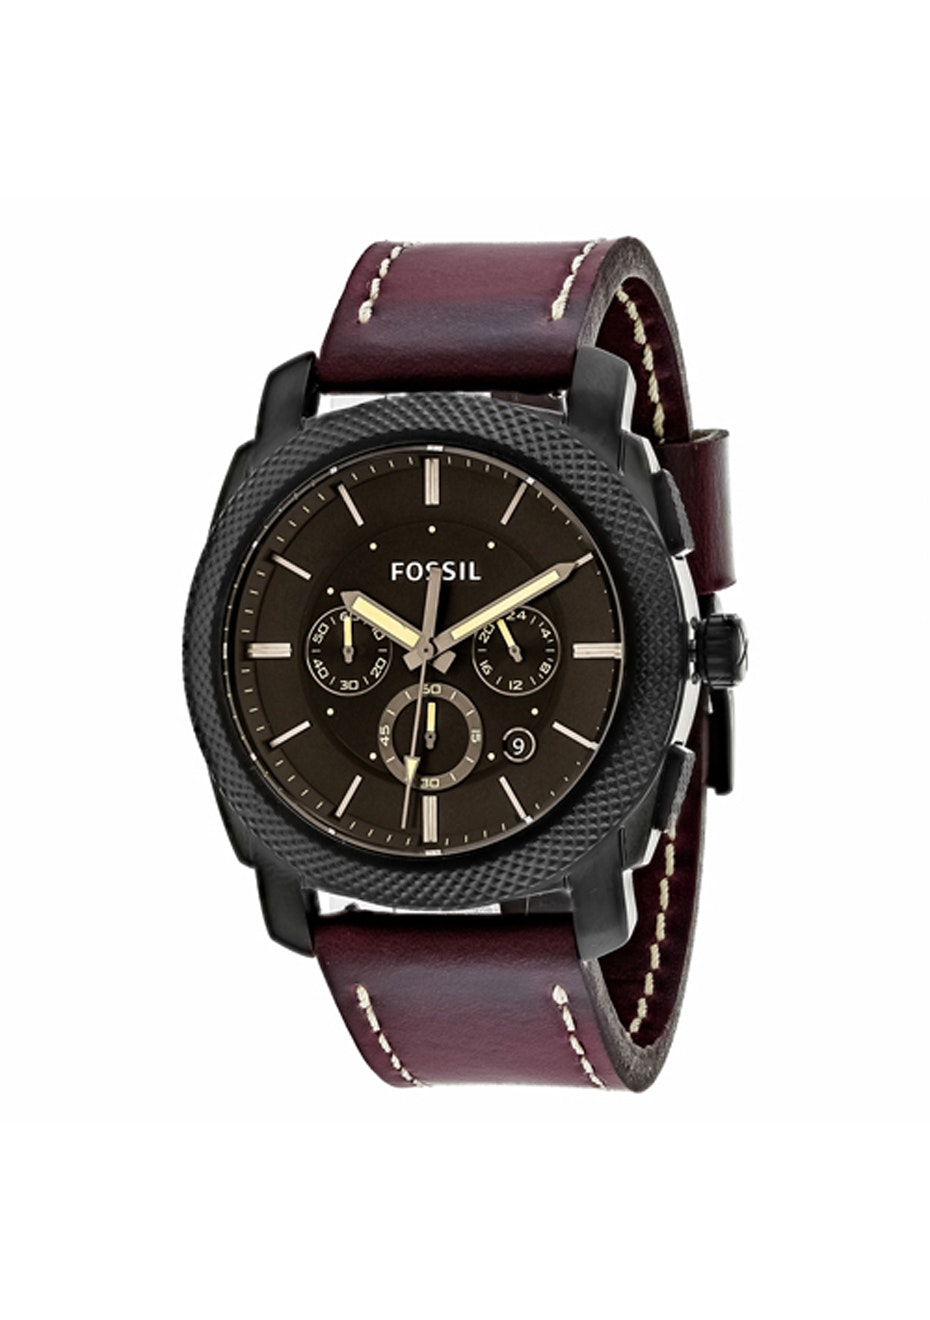 Fossil Men's Machine Chronograph - Brown/Brown